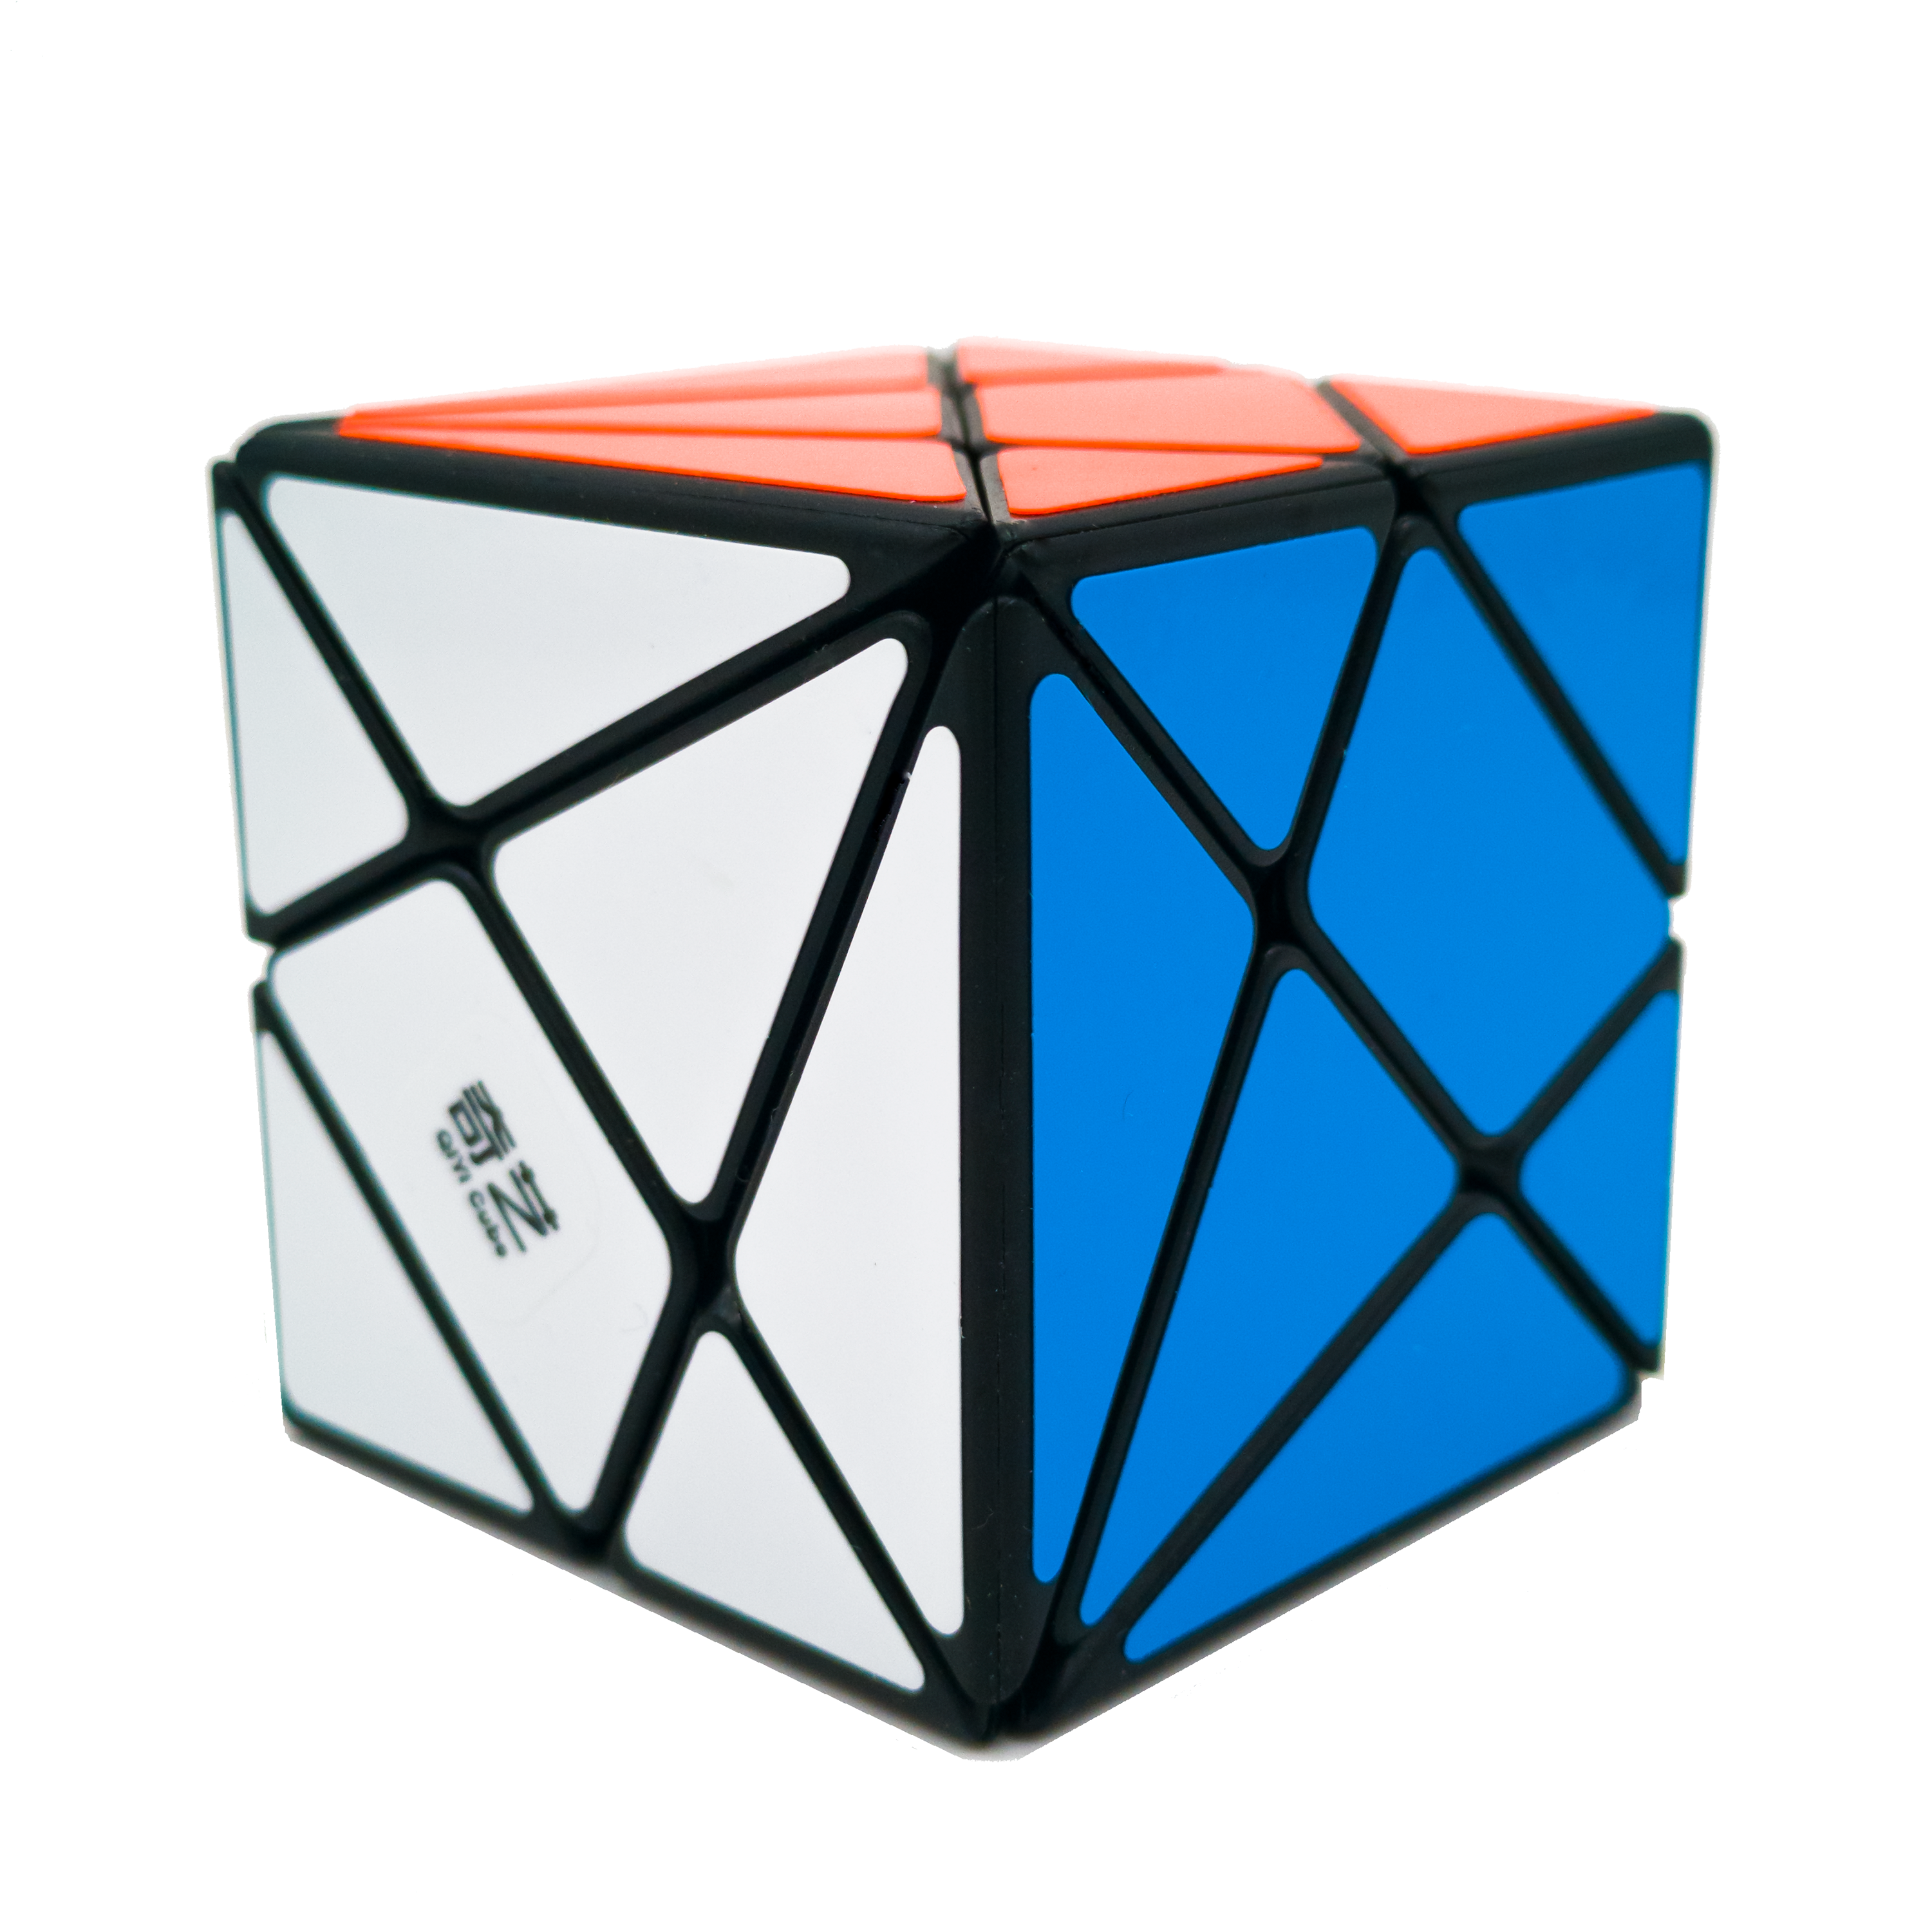 QiYi Axis Cube - CuberSpace